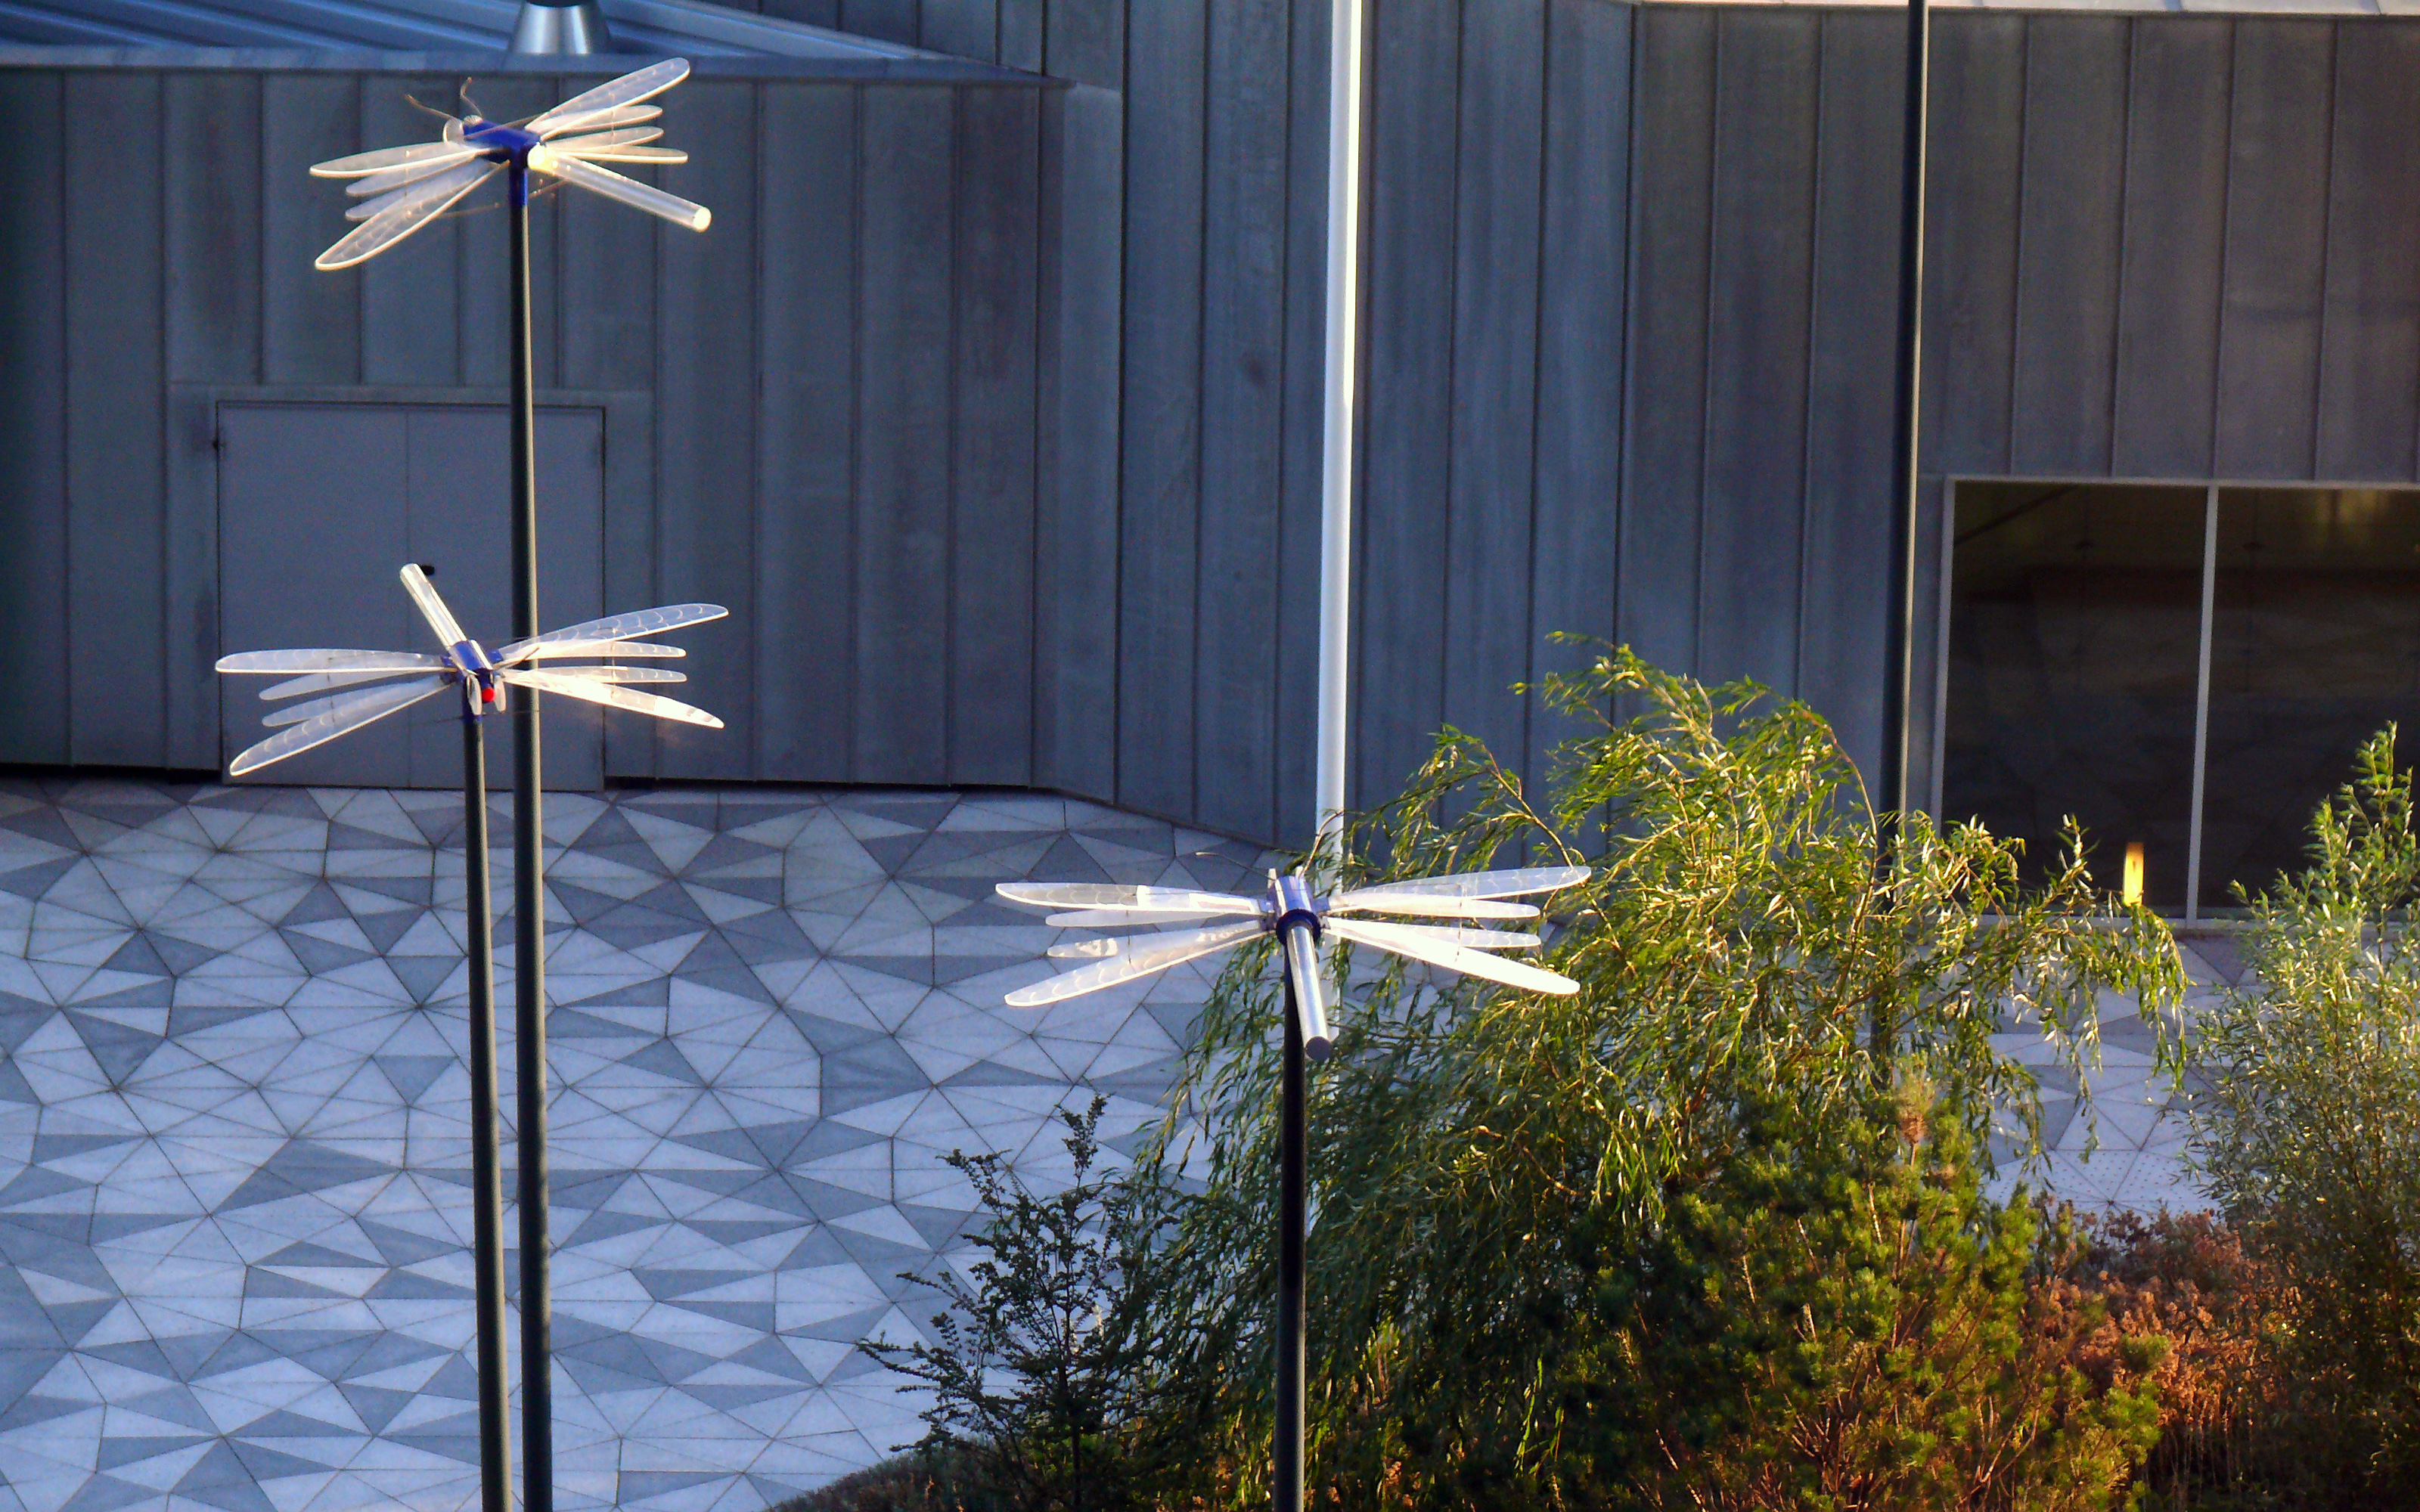 Walkways in harlequin pattern and dragonfly-like spotlights